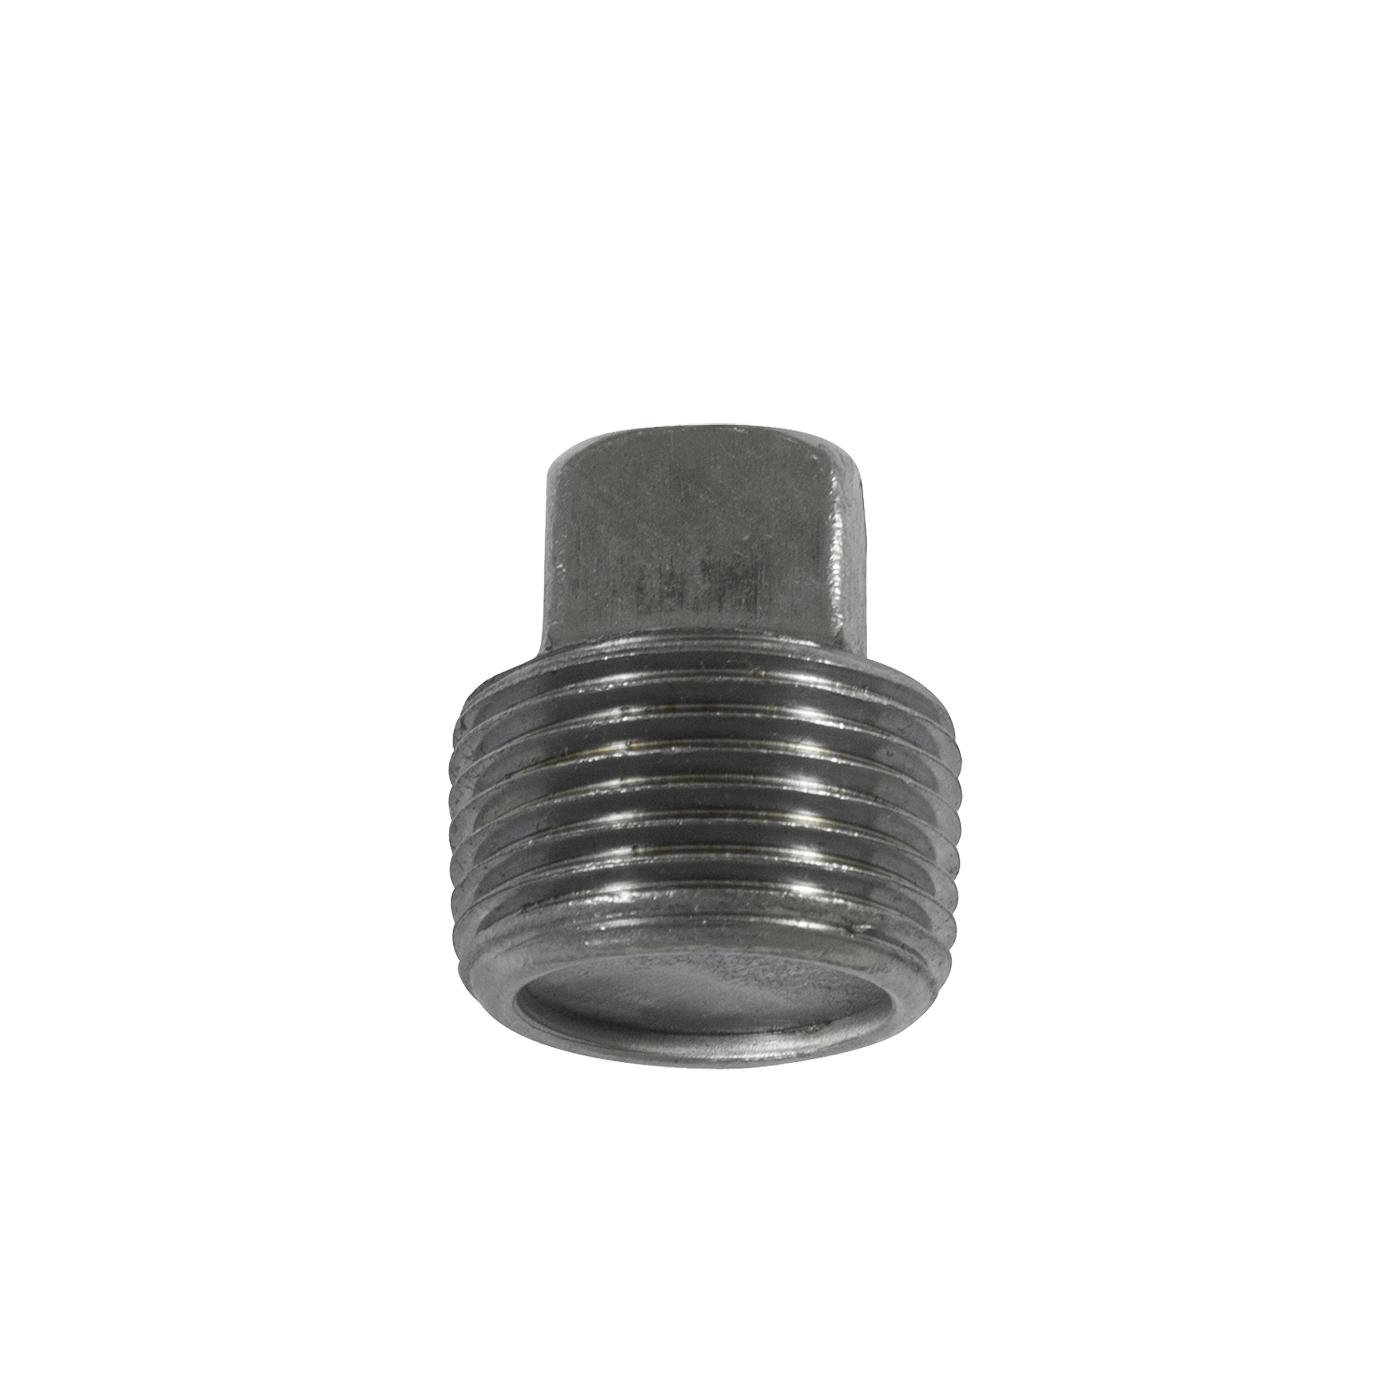 YSPFP-02 - Fill plug for Chrysler 8.75